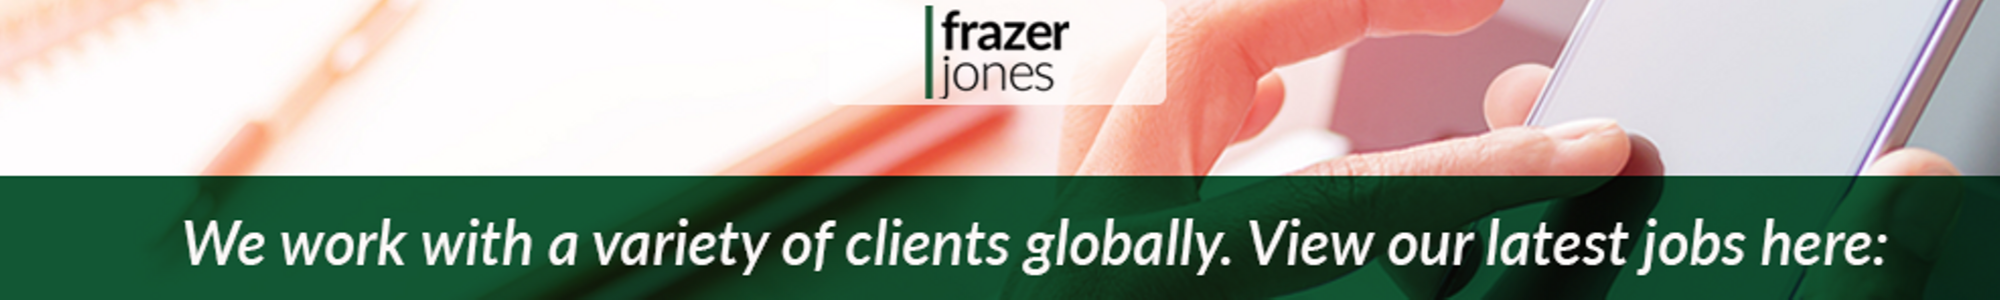 Instructional Design Leadership Development Consultant Job With Frazer Jones 1401616663